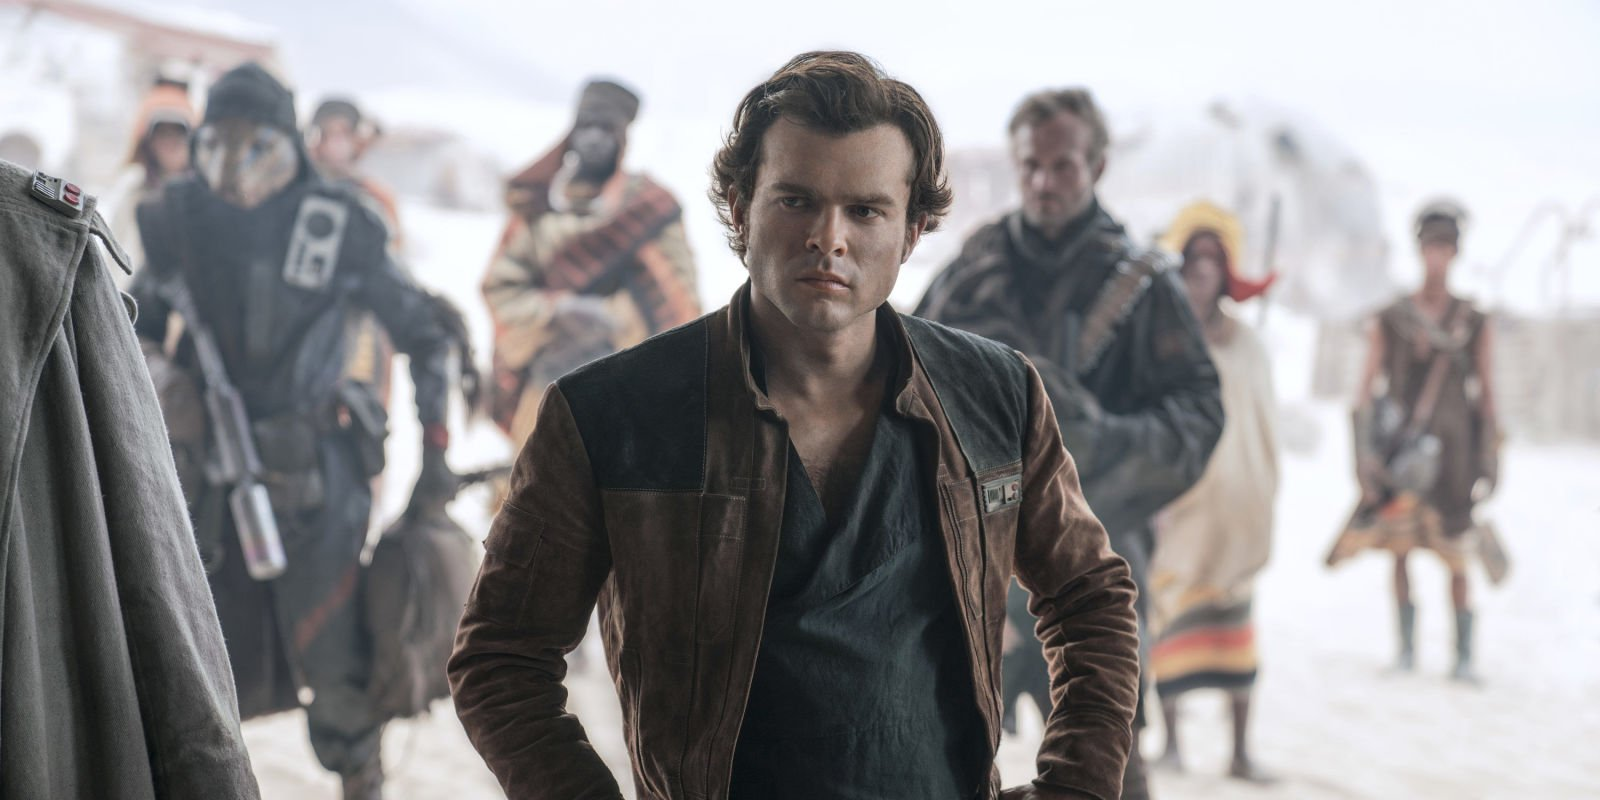 Disney unveils details about Han and Lando's first meeting in Solo: A Star Wars Story